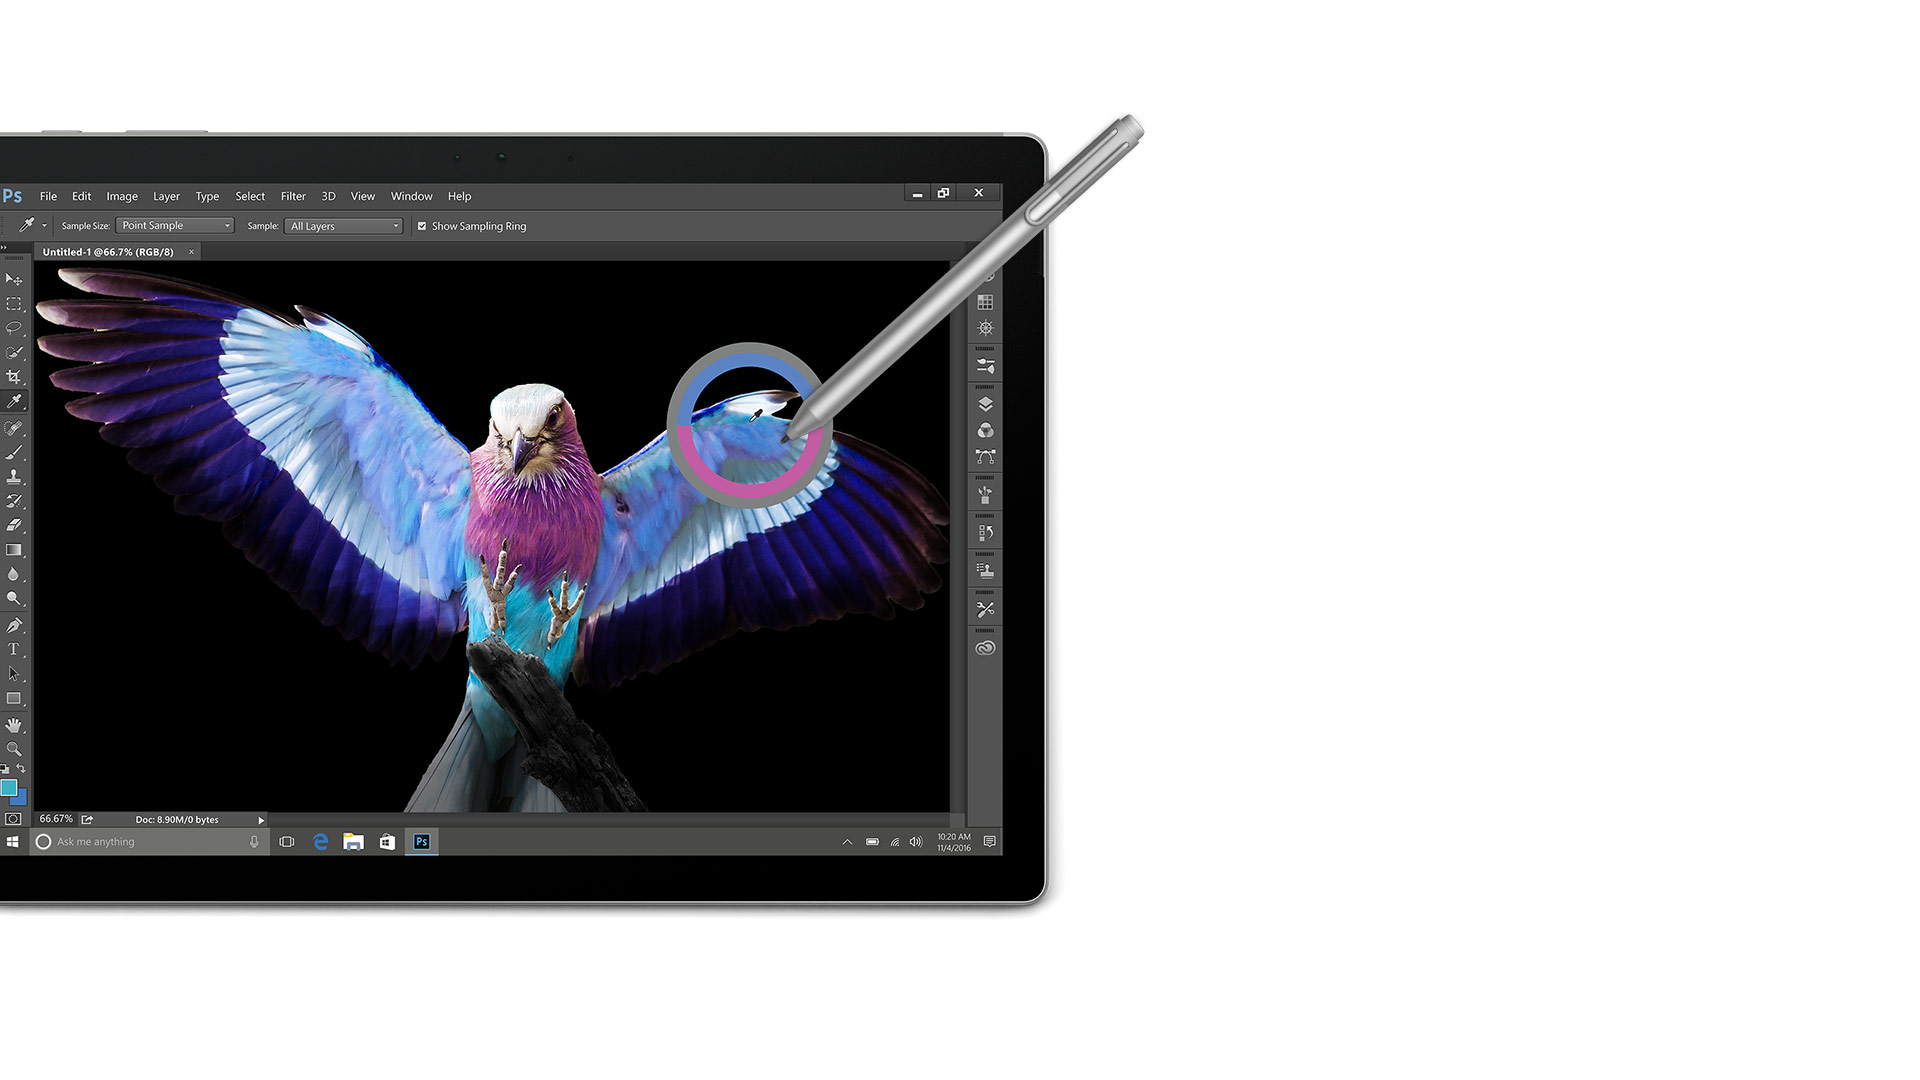 Surface Book display with Pen touching the screen and a colour picker appearing on the screen